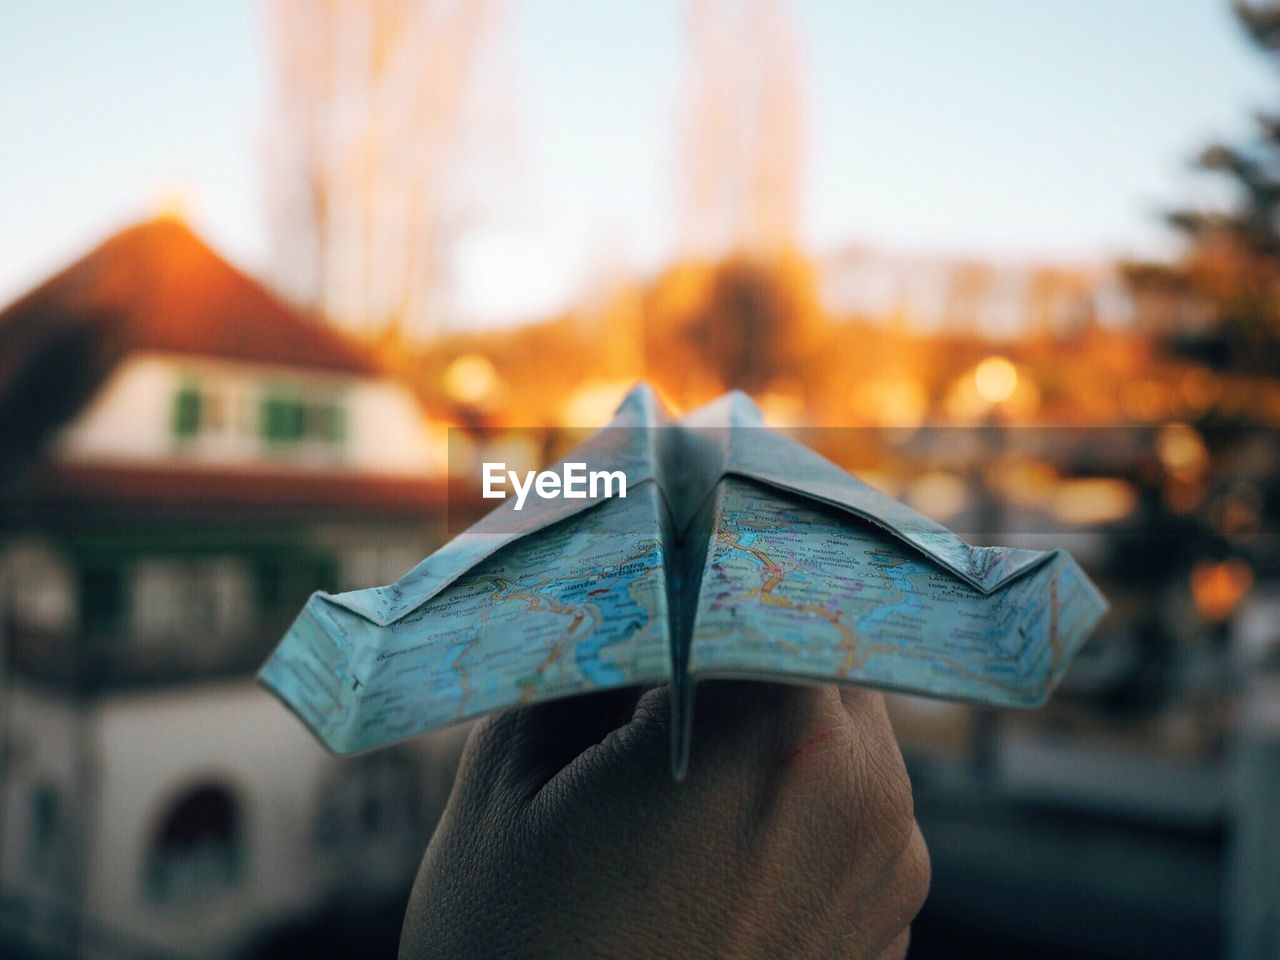 Cropped Image Of Person Holding Paper Plane Made From Map